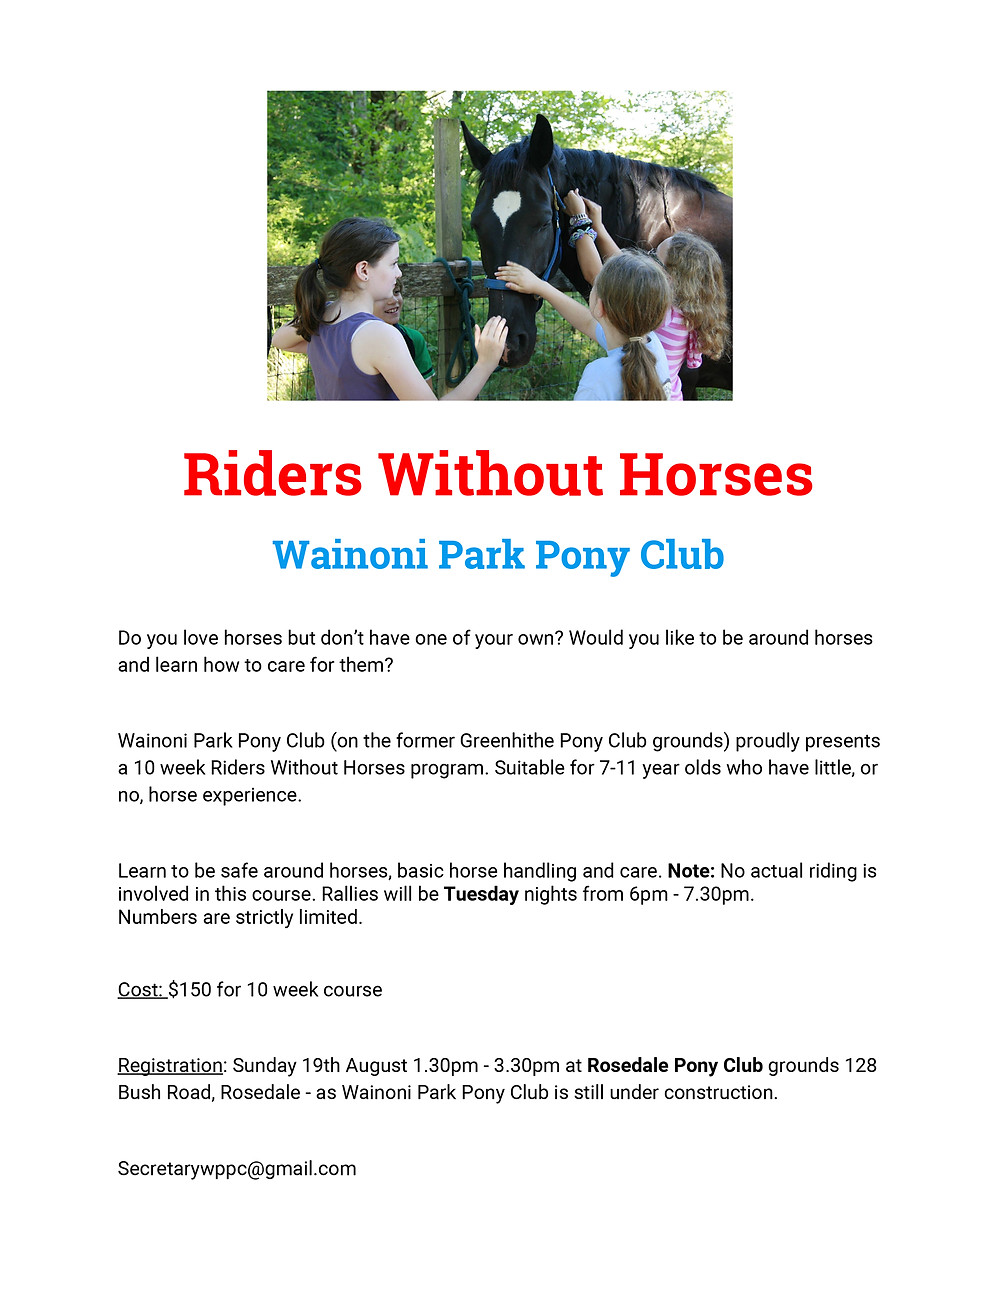 Riders Without Horses Informational Text